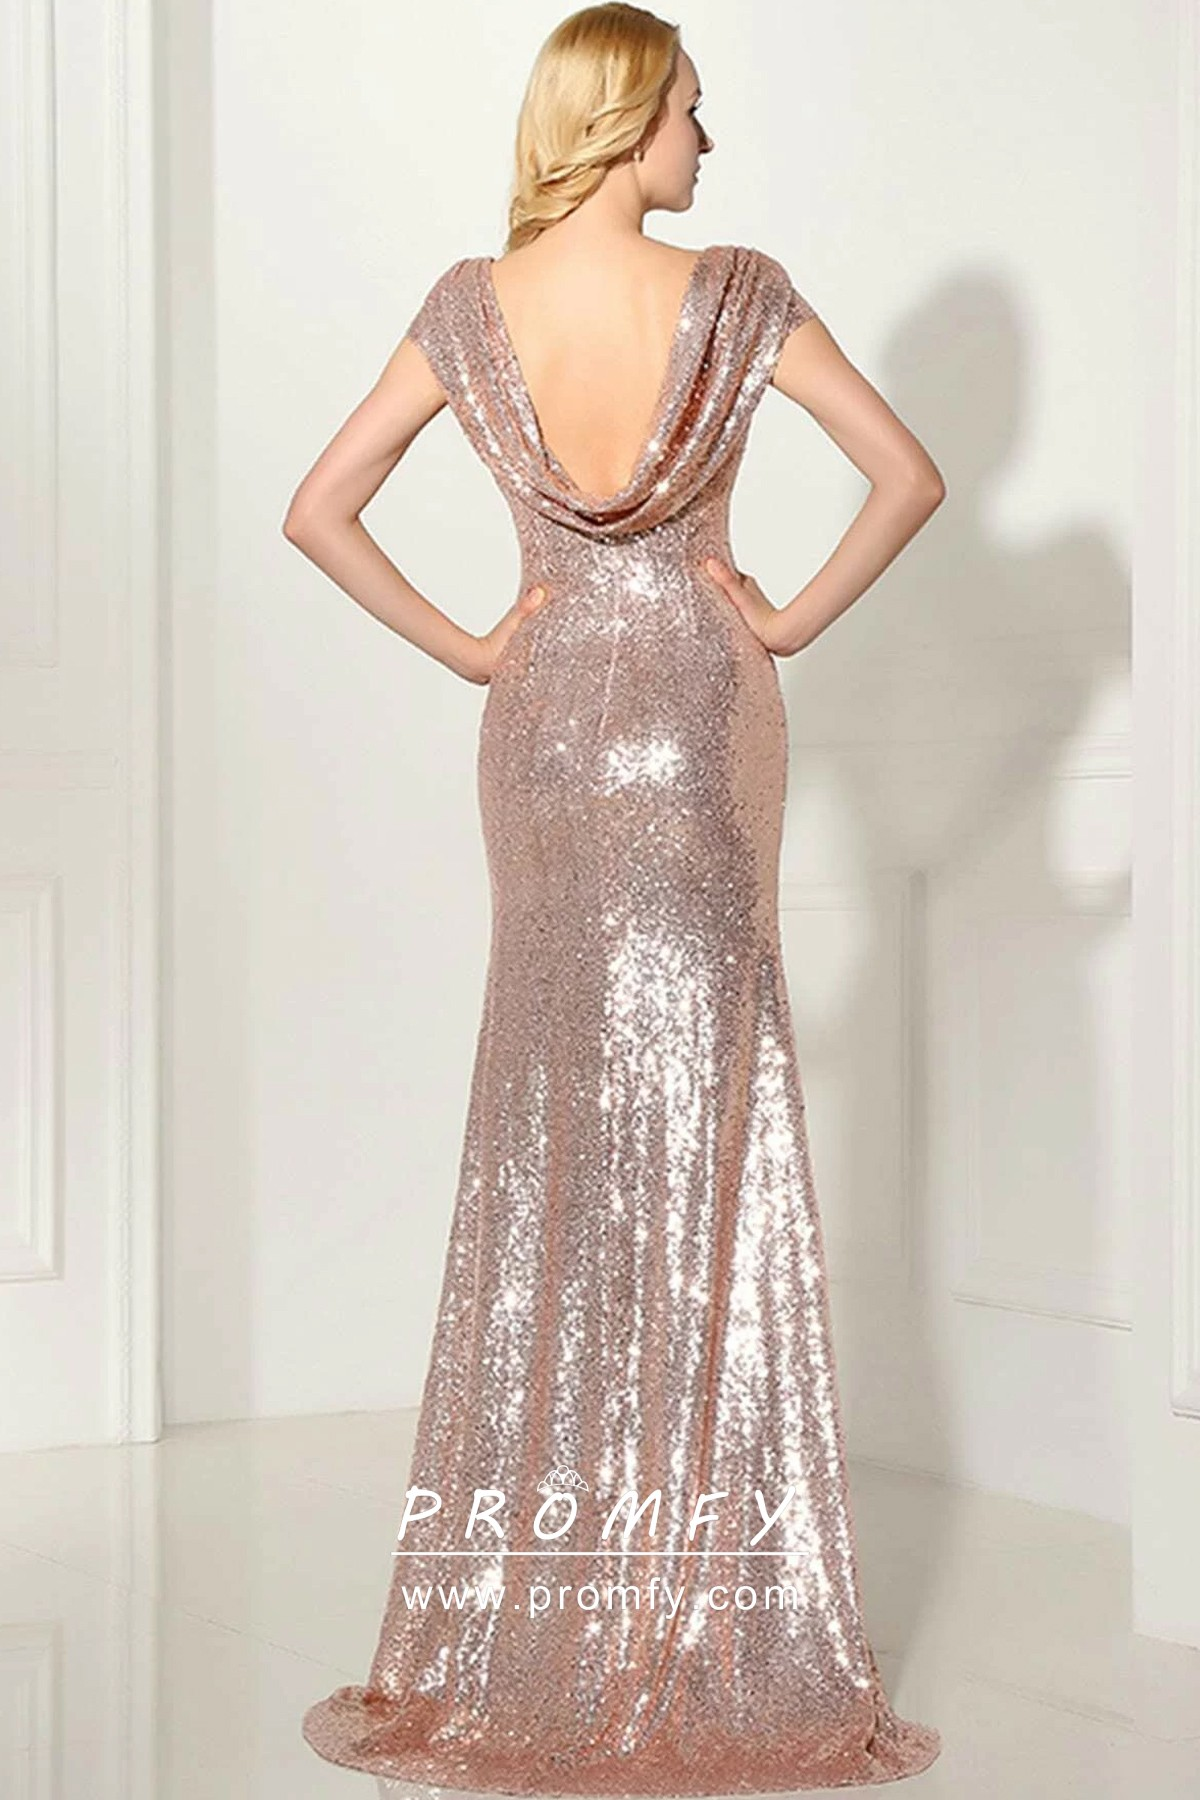 Cowl Neck Mermaid Long Silver Evening Dress with Open Back